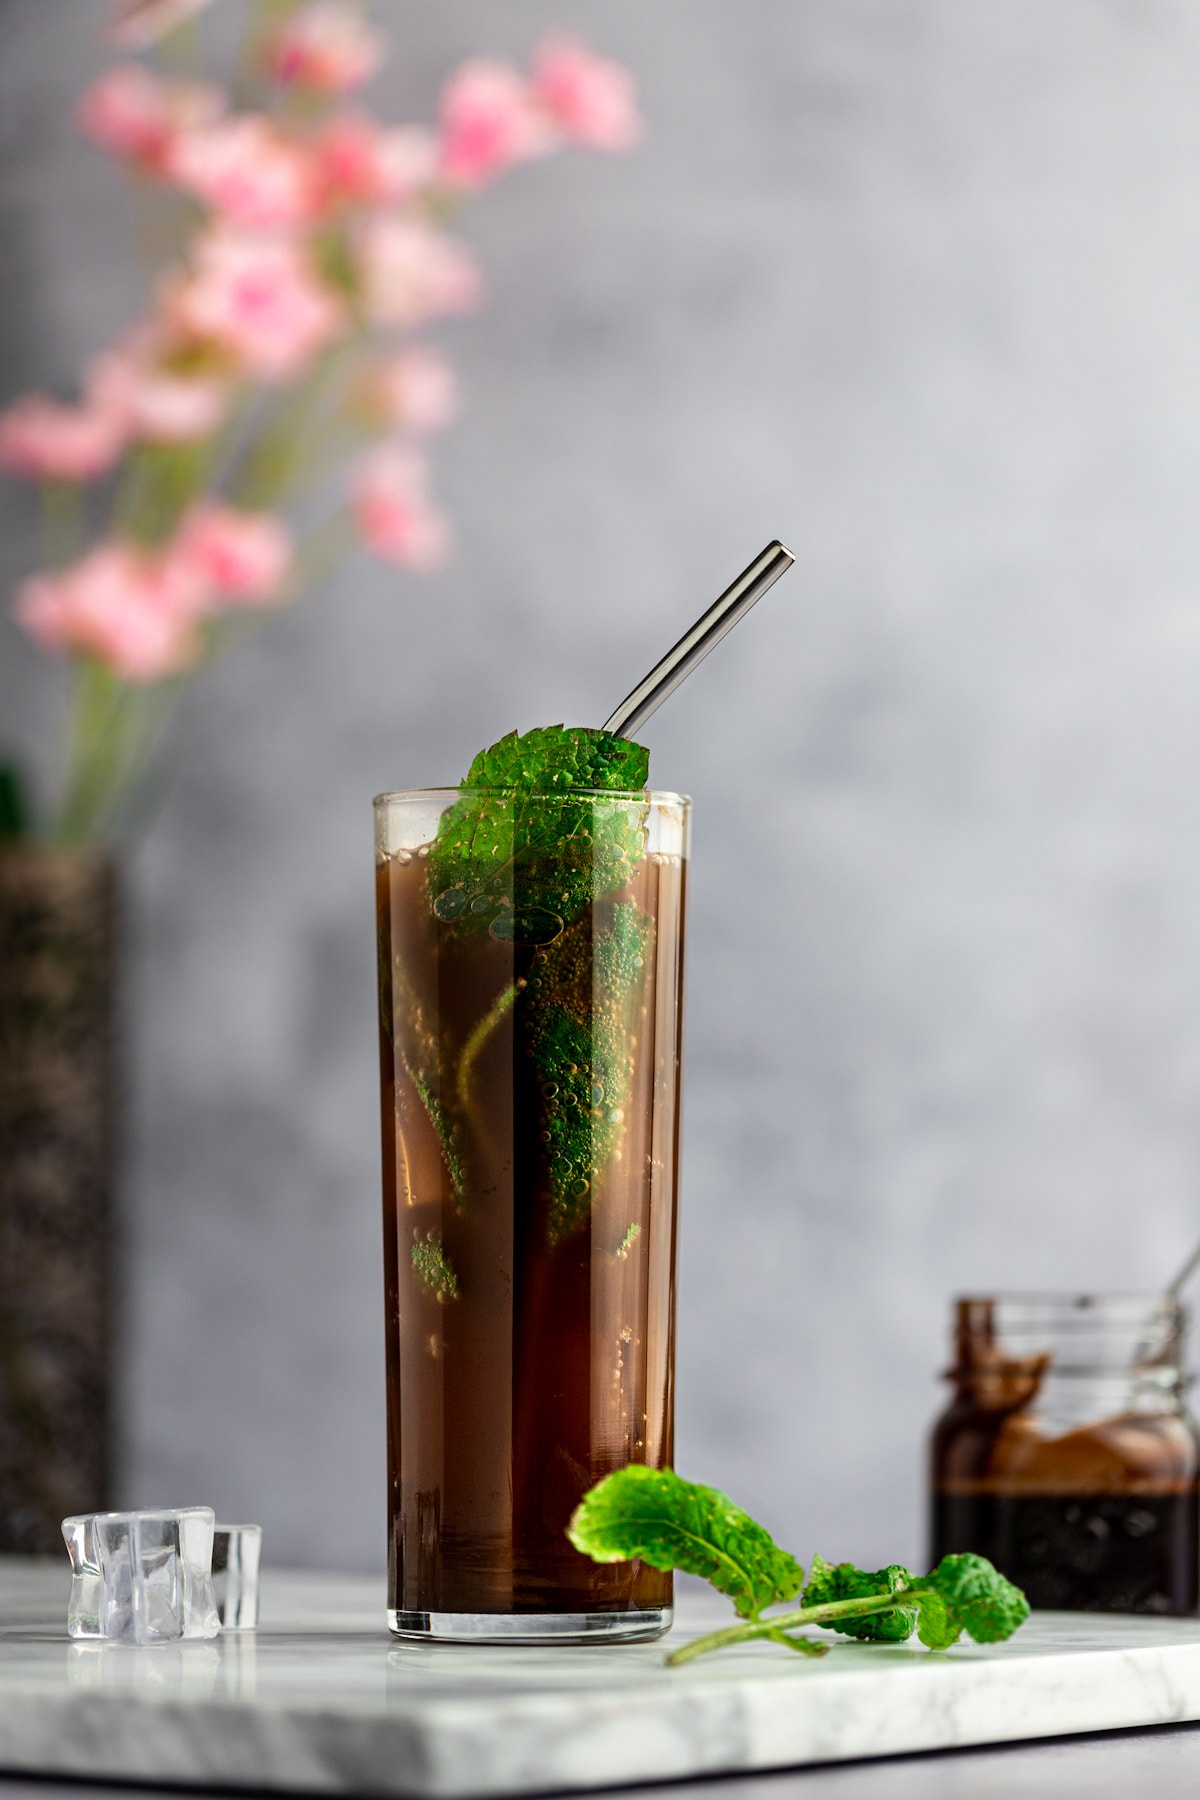 Up close photo of a chocolate mojito, with a metal straw and garnished with fresh mint leaves, on a marble board, next to mint leaves and ice cubes, with pink flowers behind.